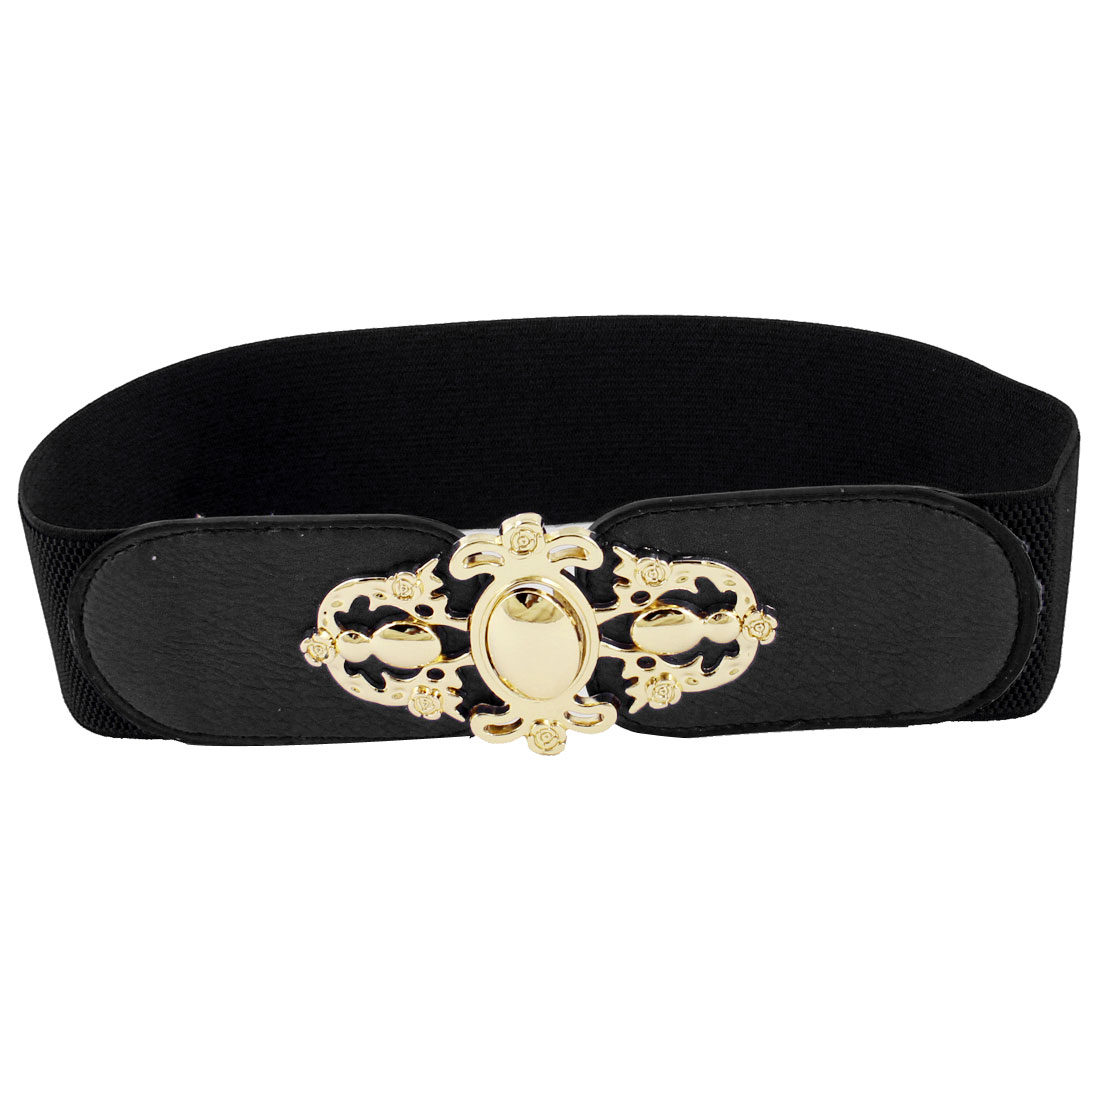 Women Interlocking Buckle Faux Leather Cut Off Flower Stretchy Belt Black